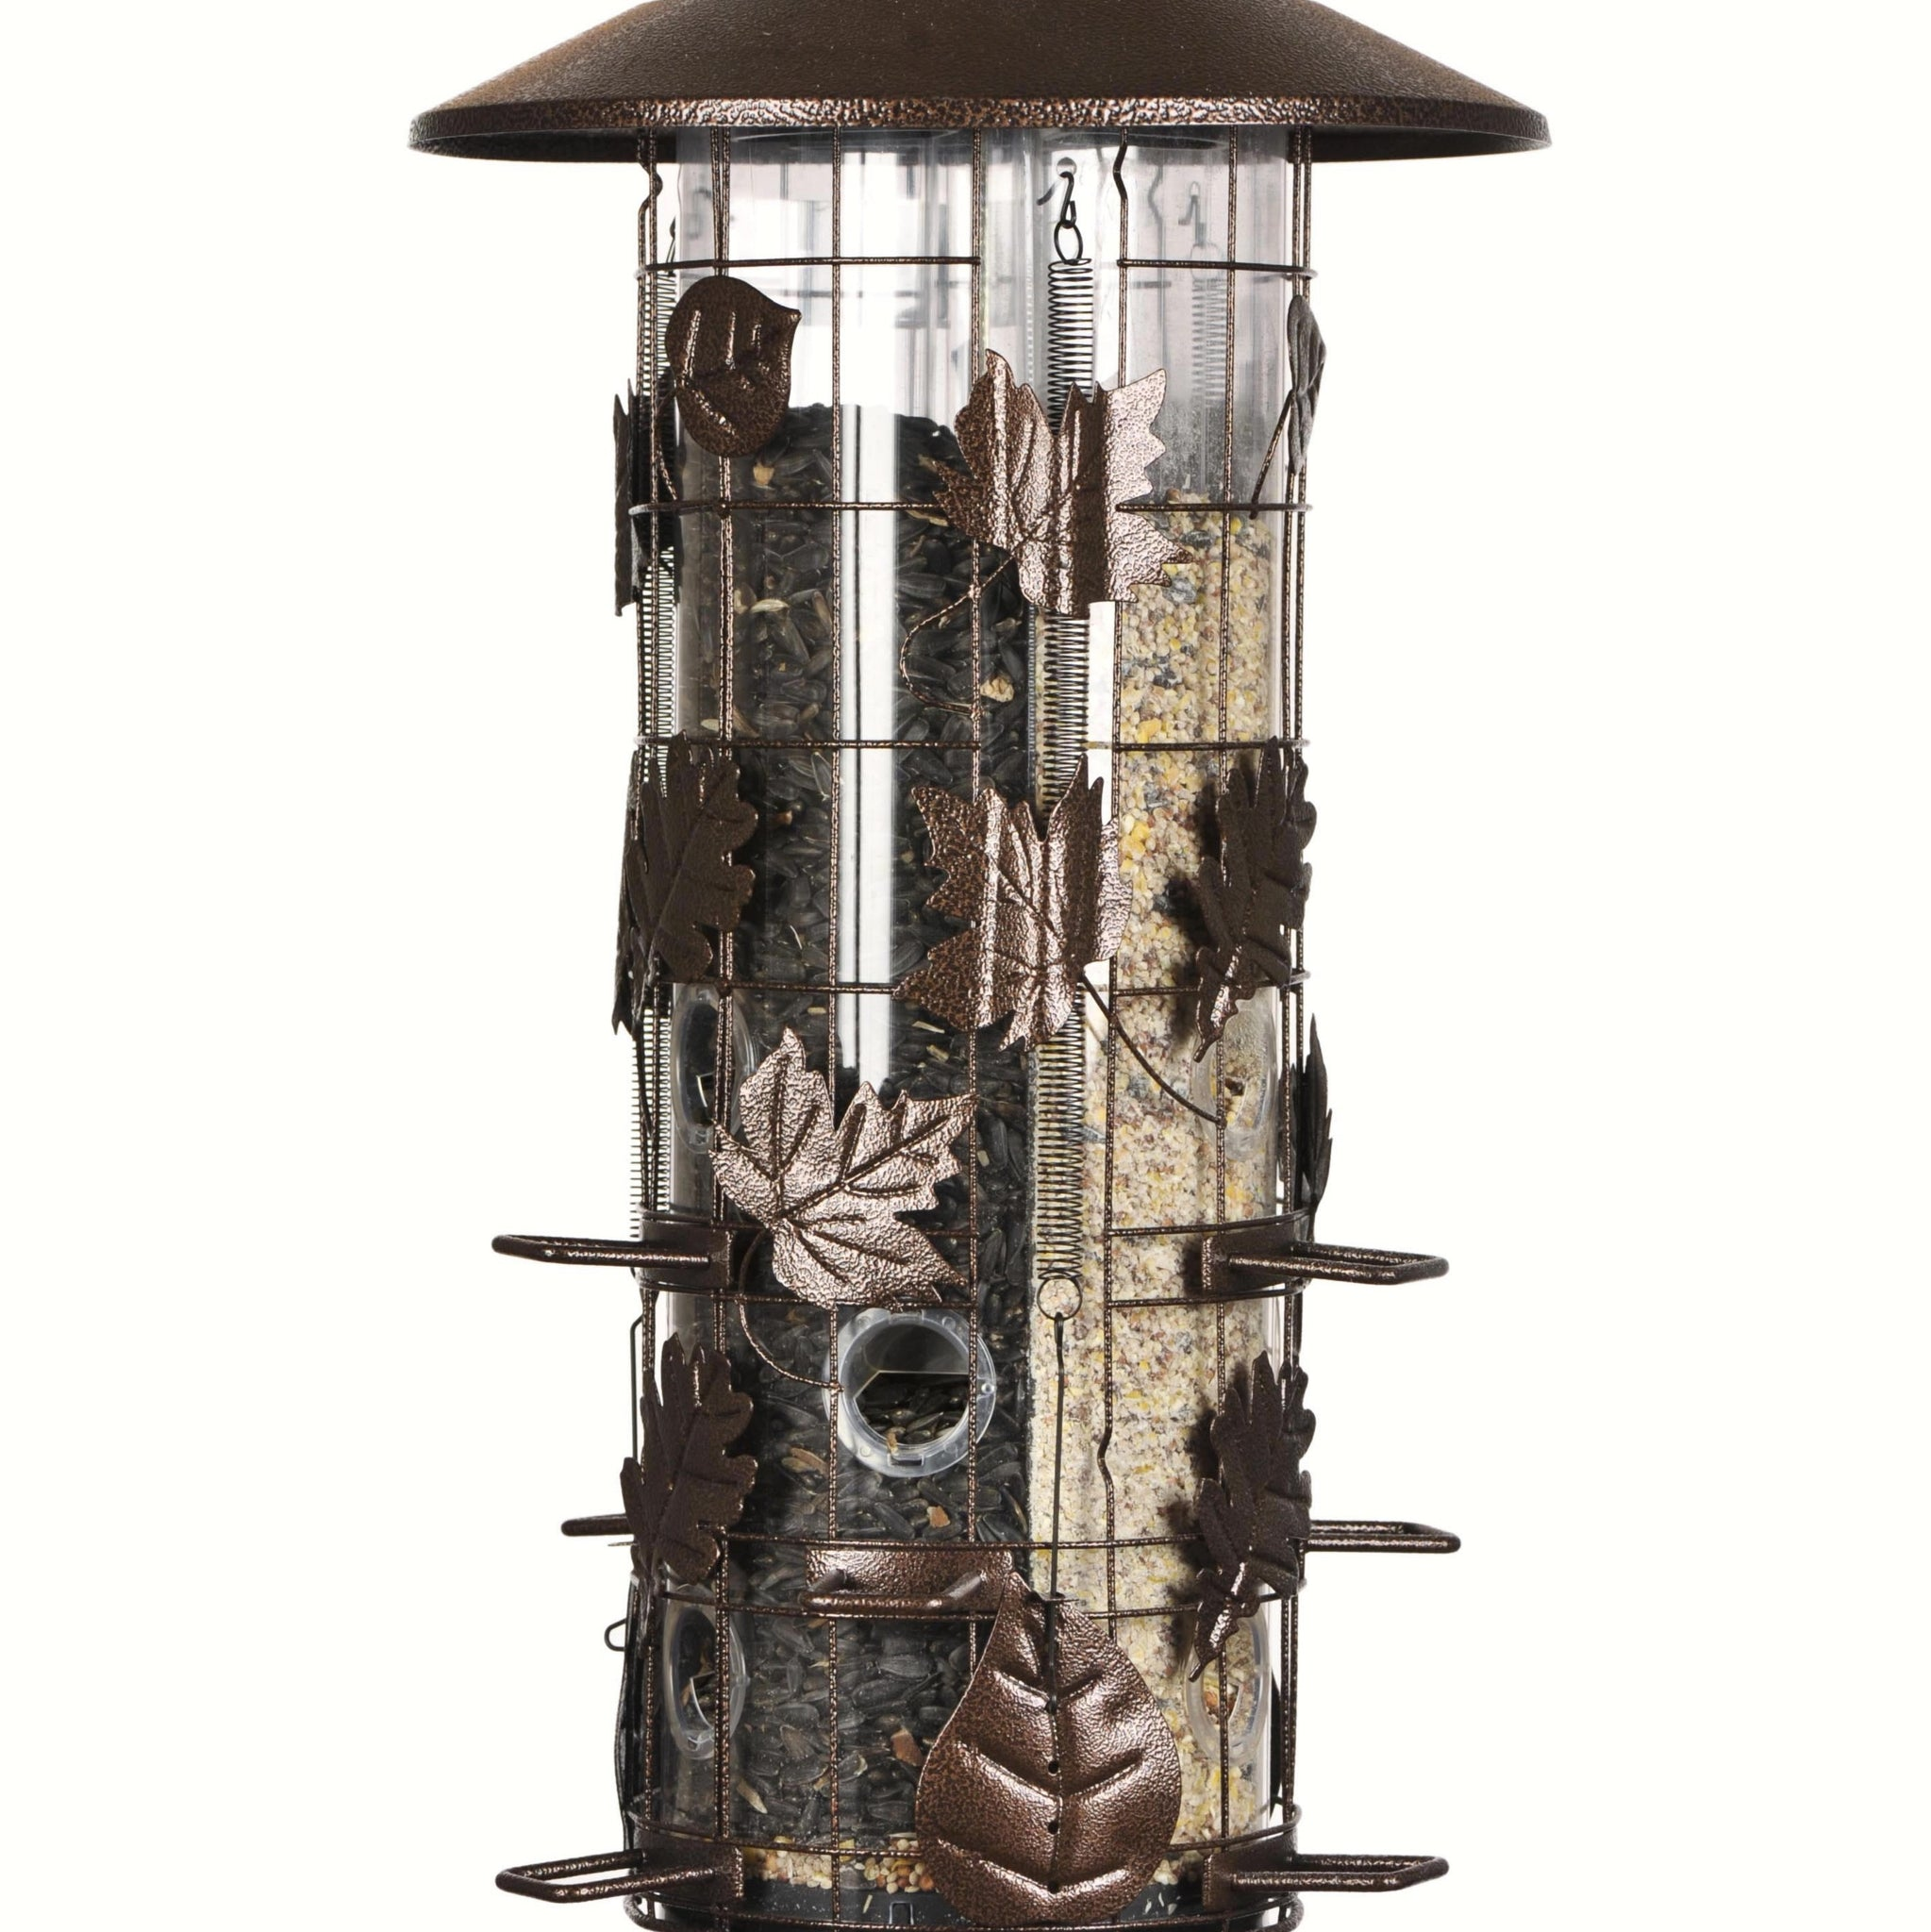 Perky Pet 8 LB Capacity 9 Port 3 Compartment Weight Sensitive Bird Feeder